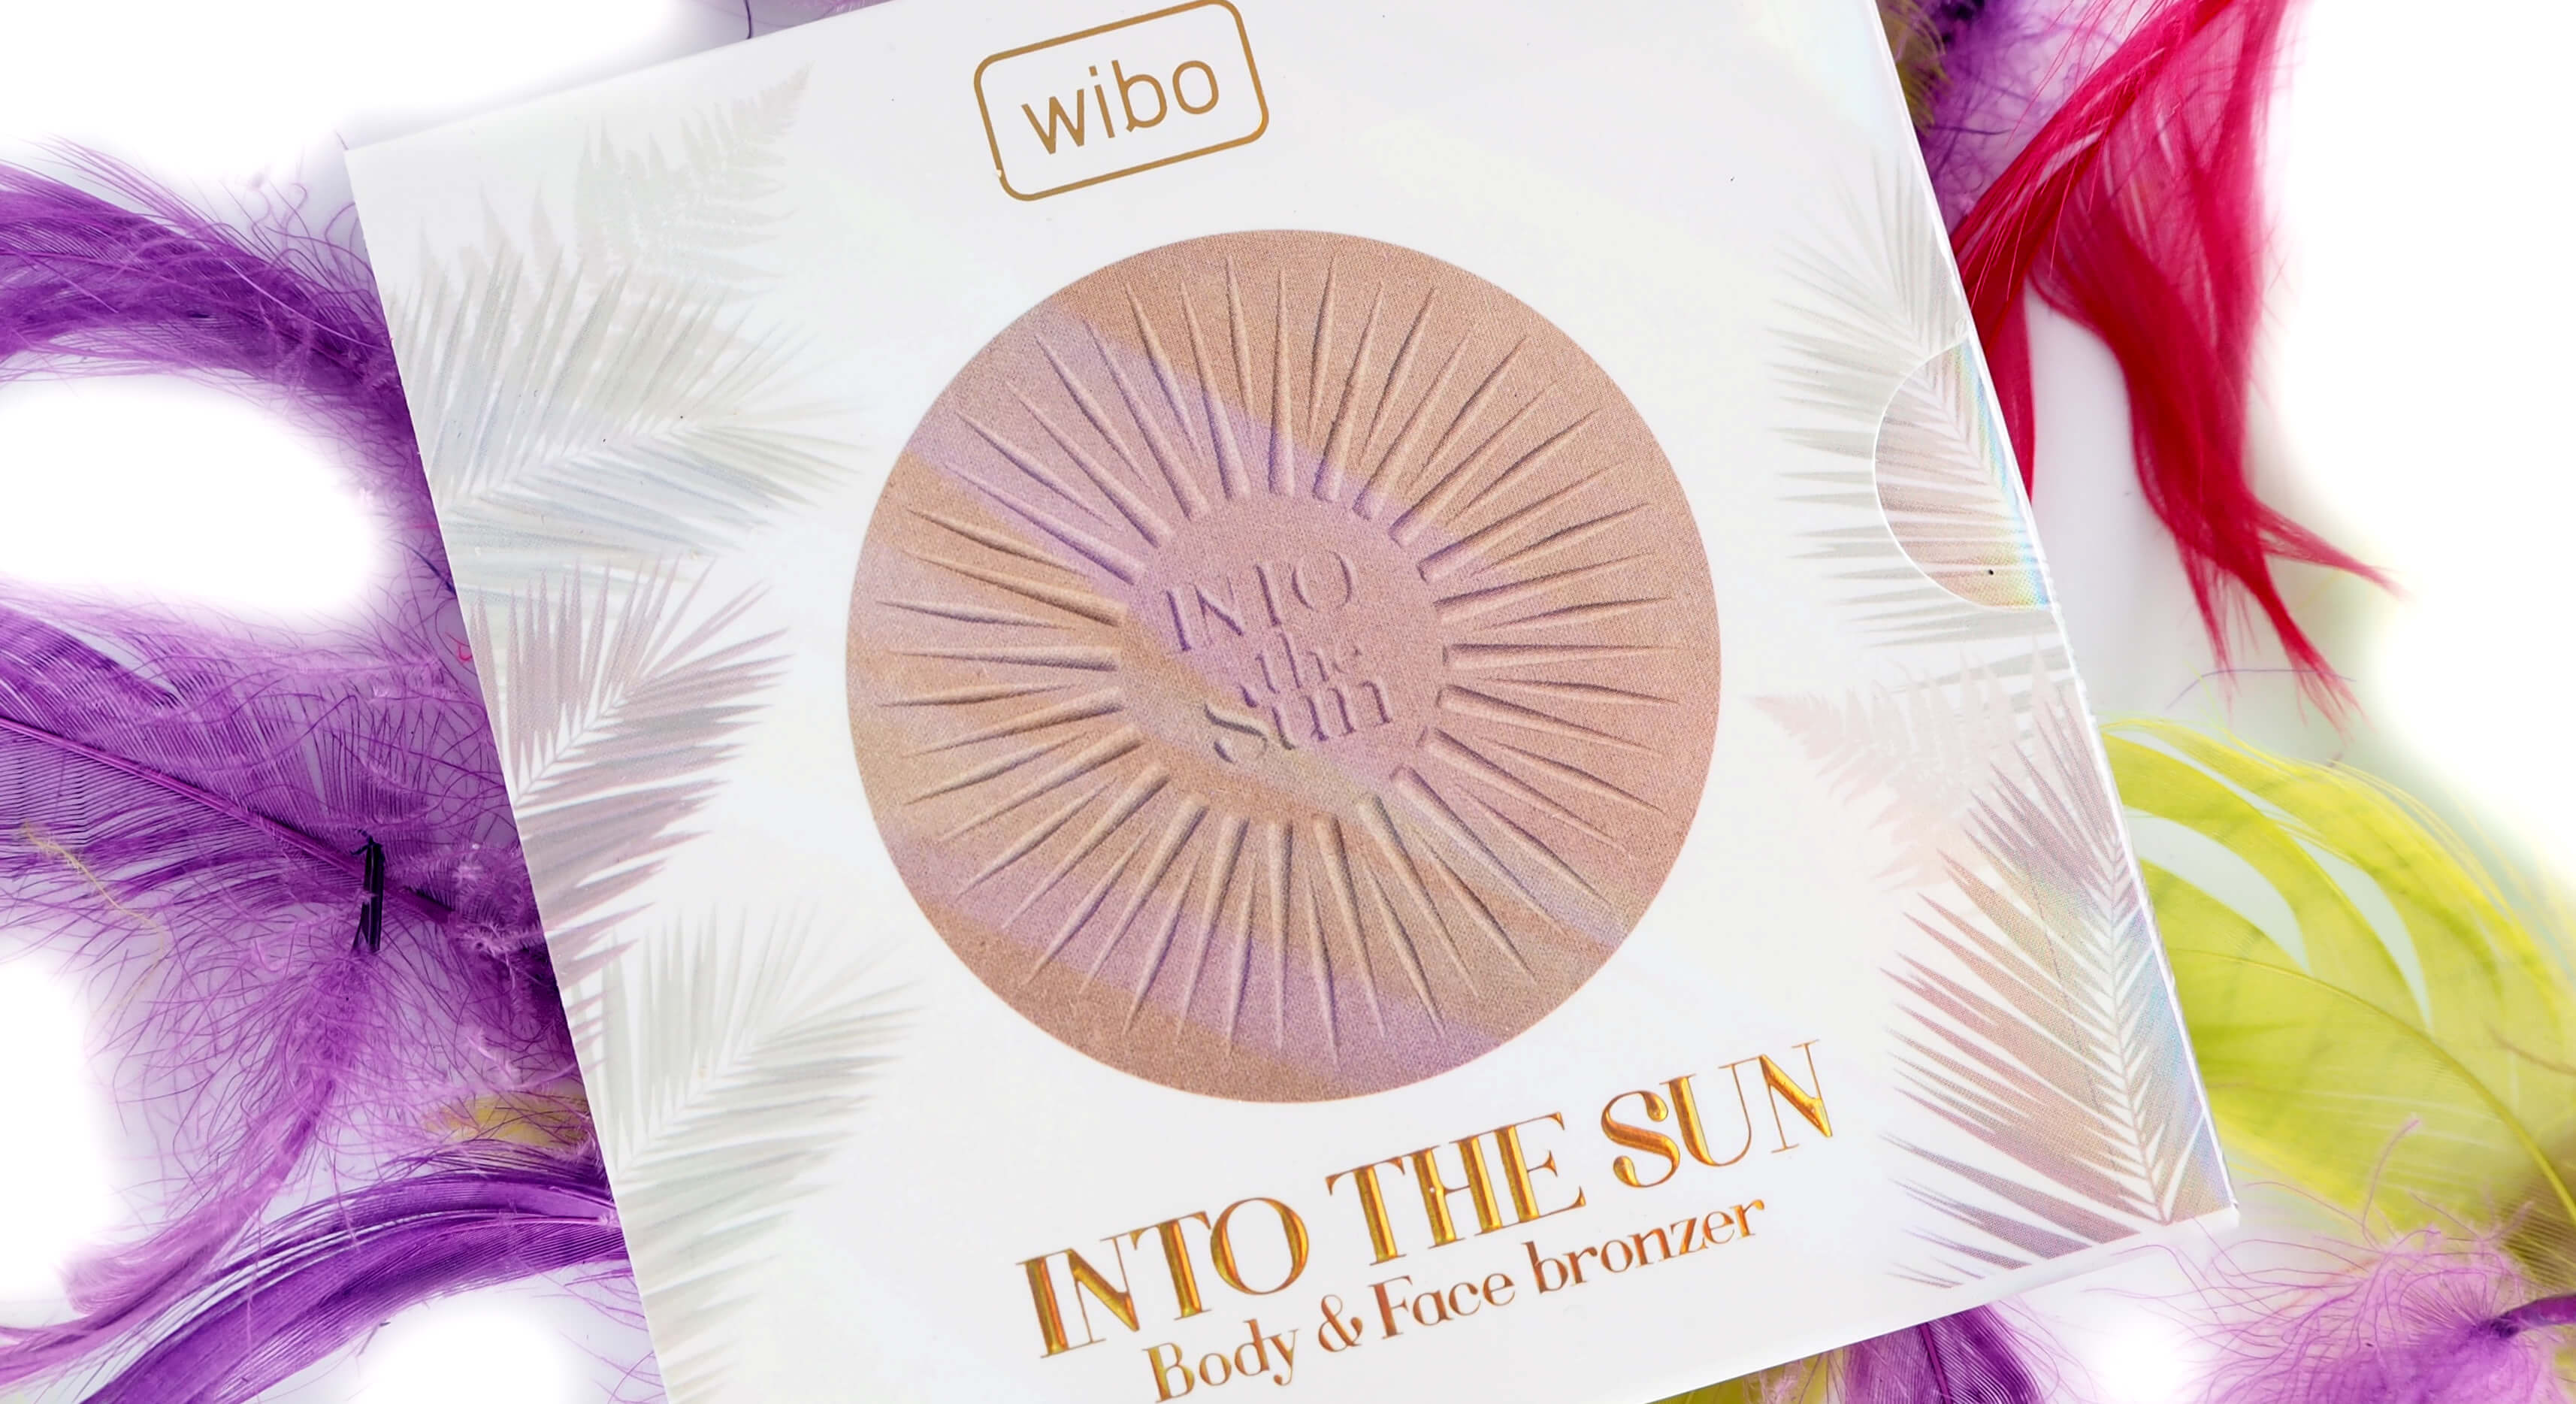 WIBO INTO THE SUN Body&Face Bronzer